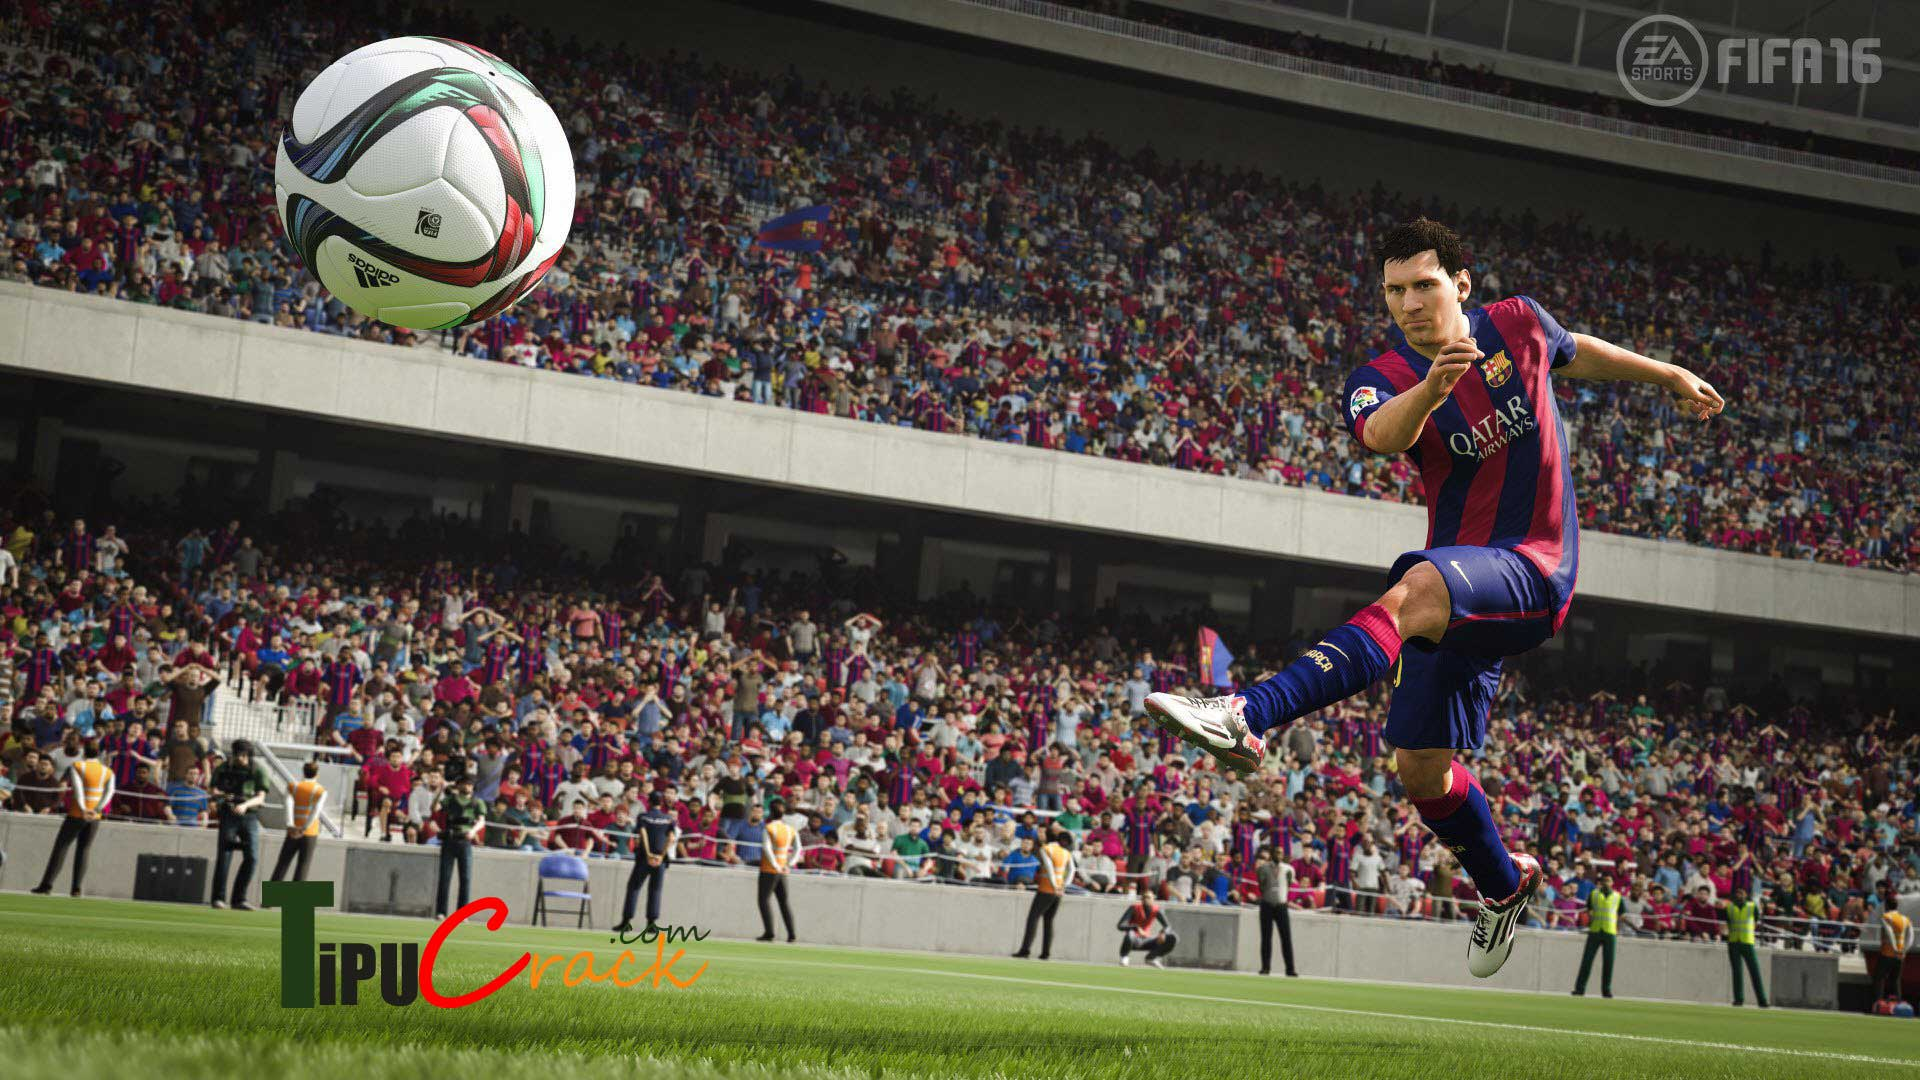 Ea Sports Fifa 16 Crack For Pc Free Download